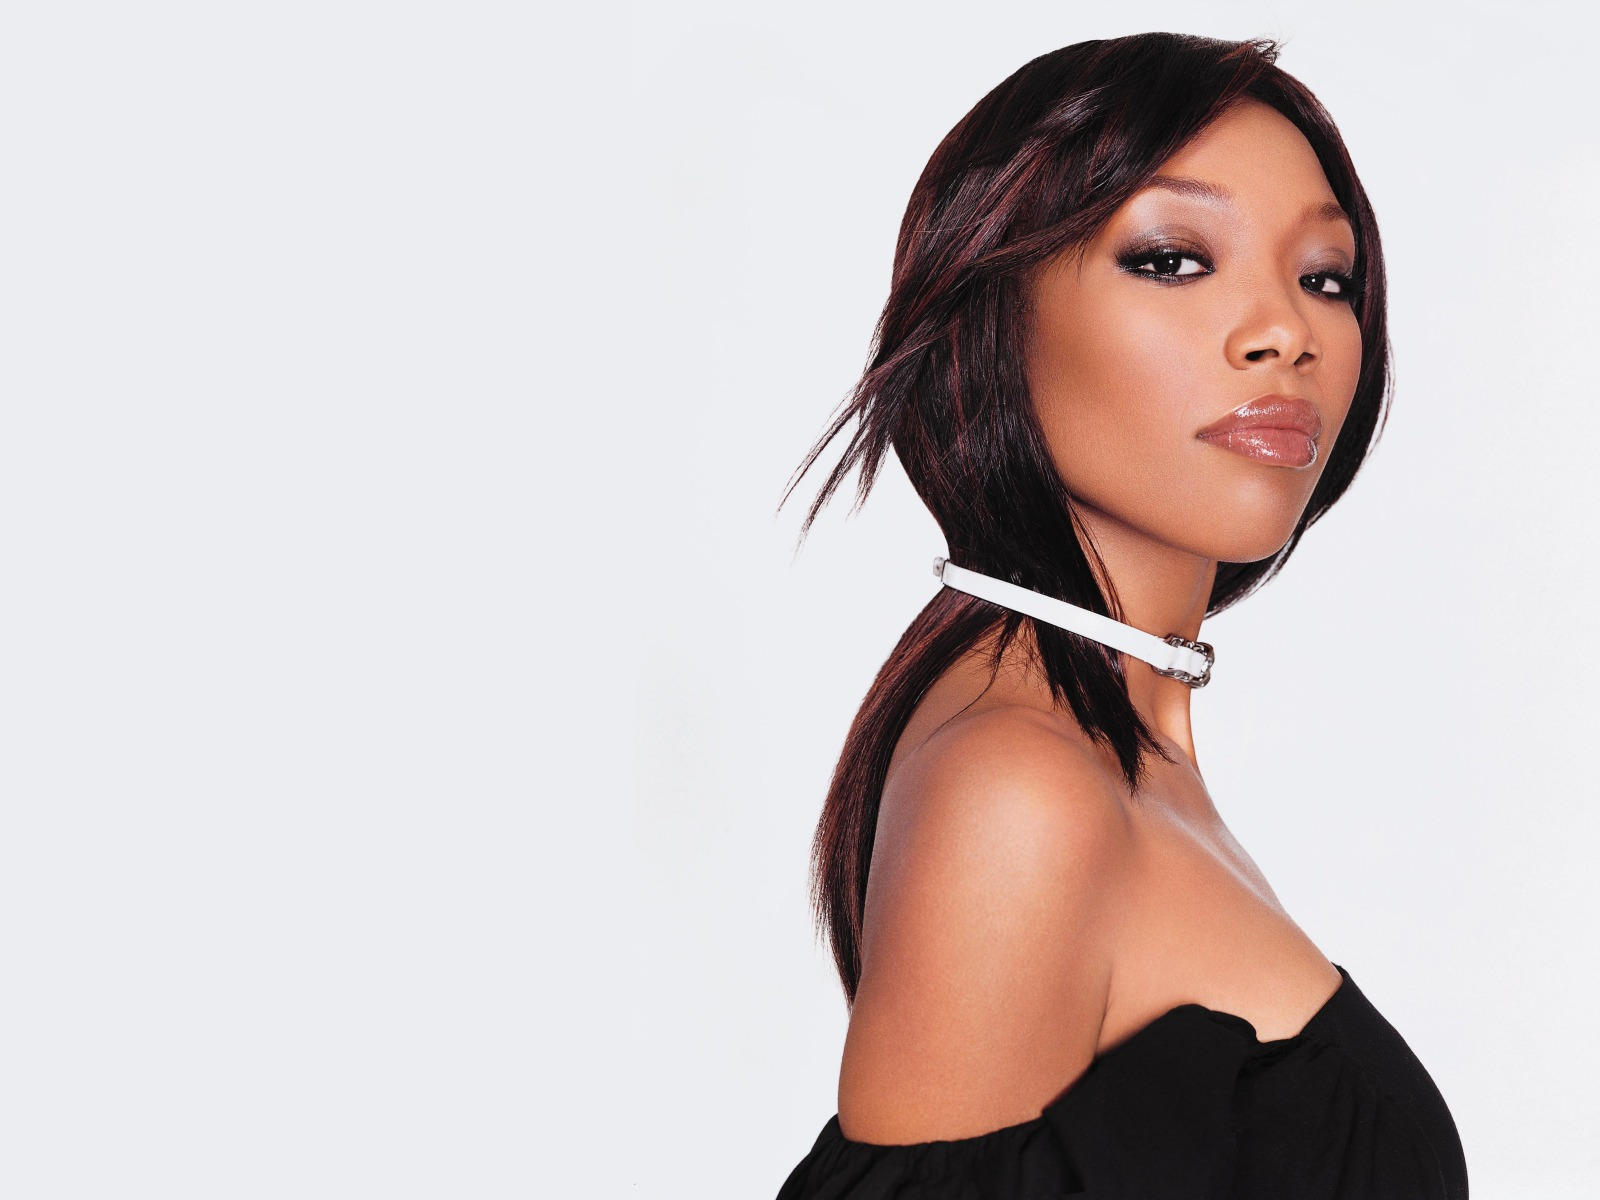 Brandy_Norwood_01_1600x1200.jpg